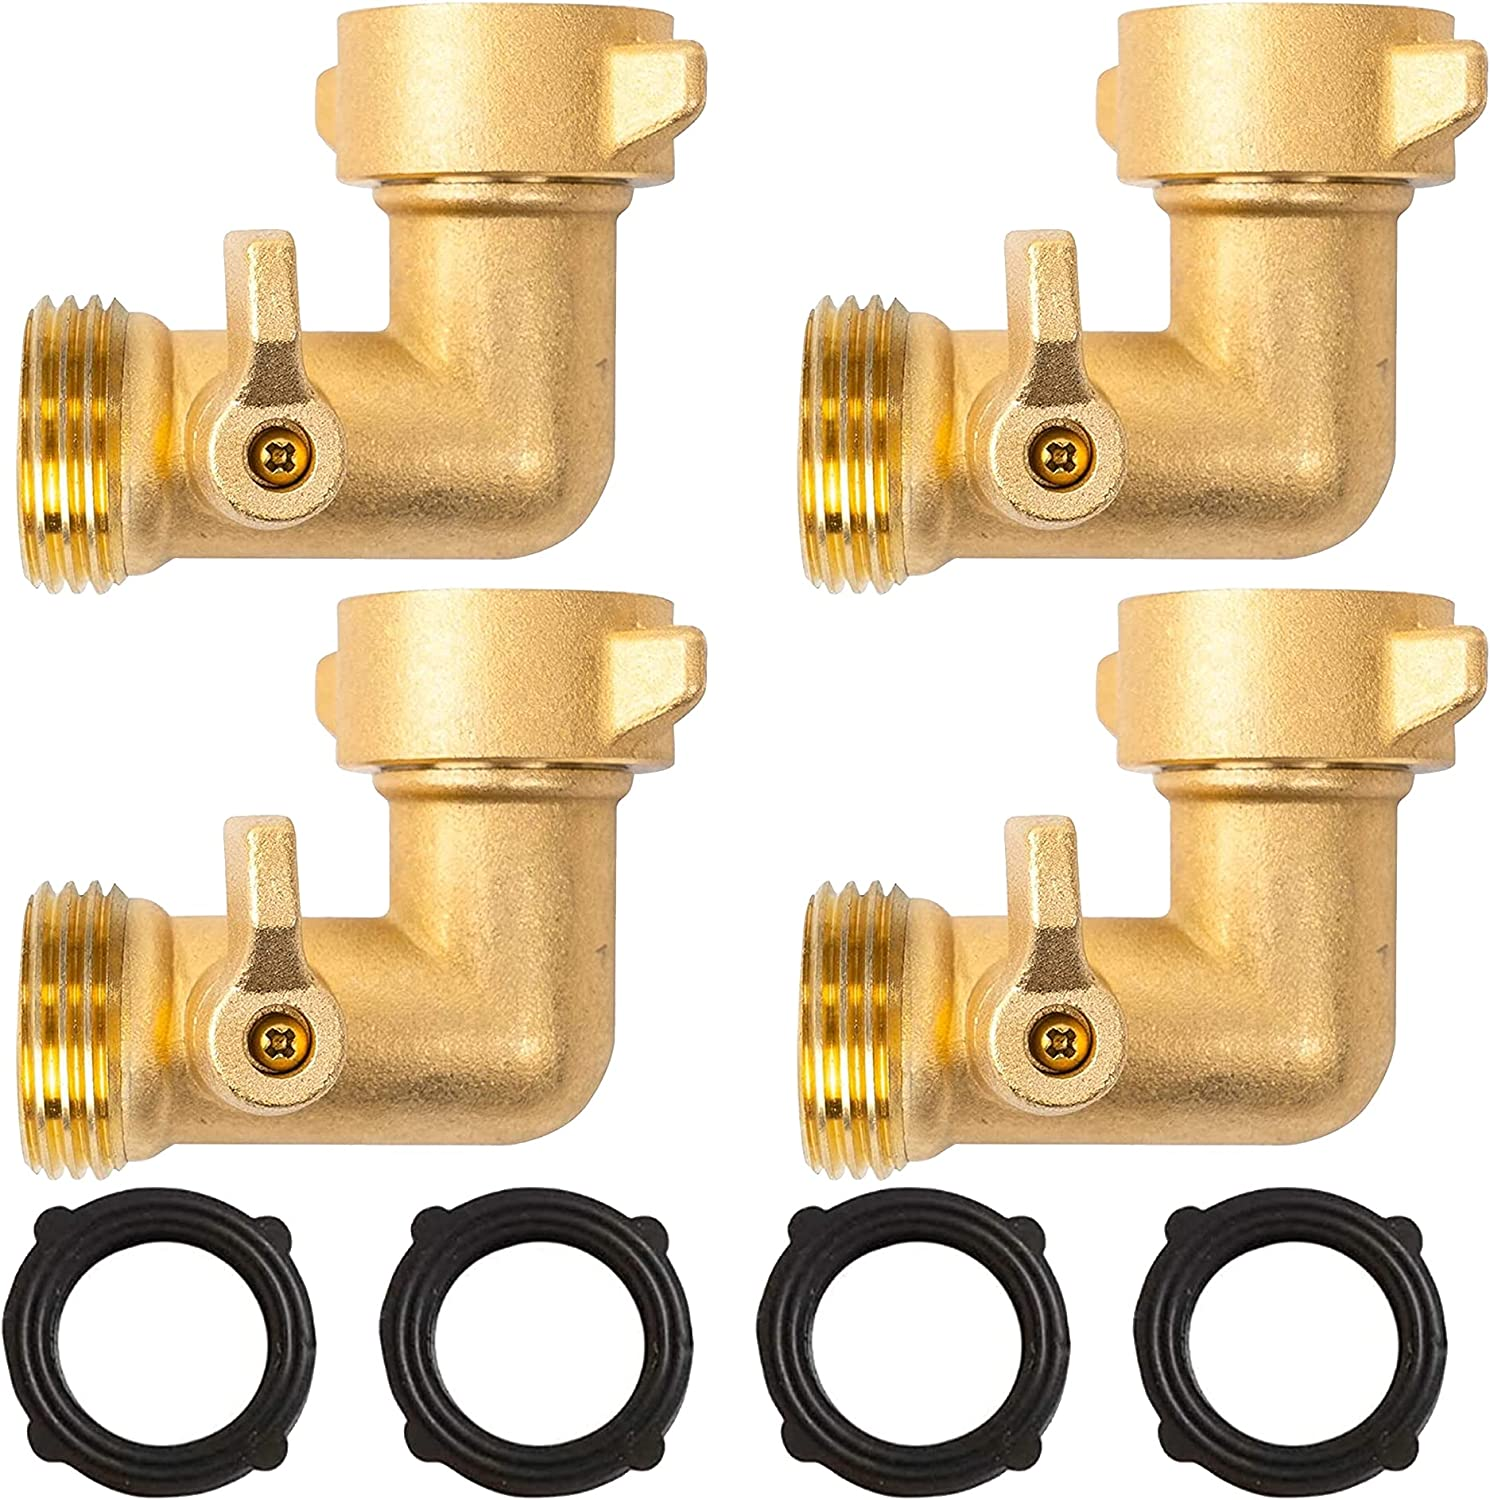 Xiny Tool 90 Degree Garden Hose Adapter with Shut Off Valves, 3/4